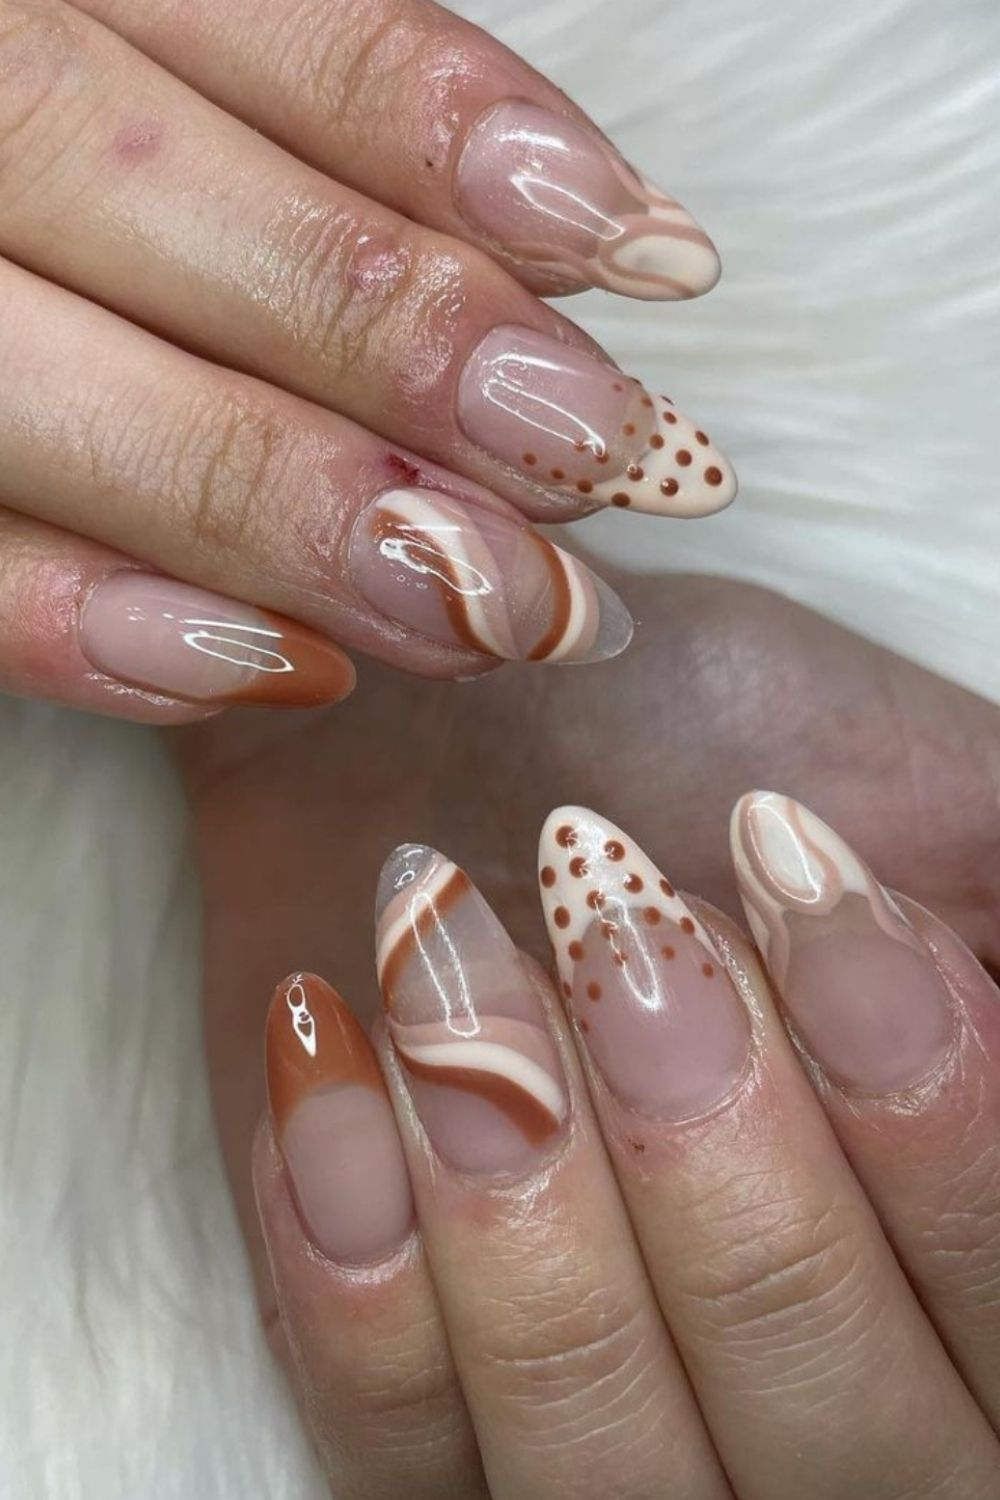 42 Trendy Autumn nail designs 2021 you'll love to wear